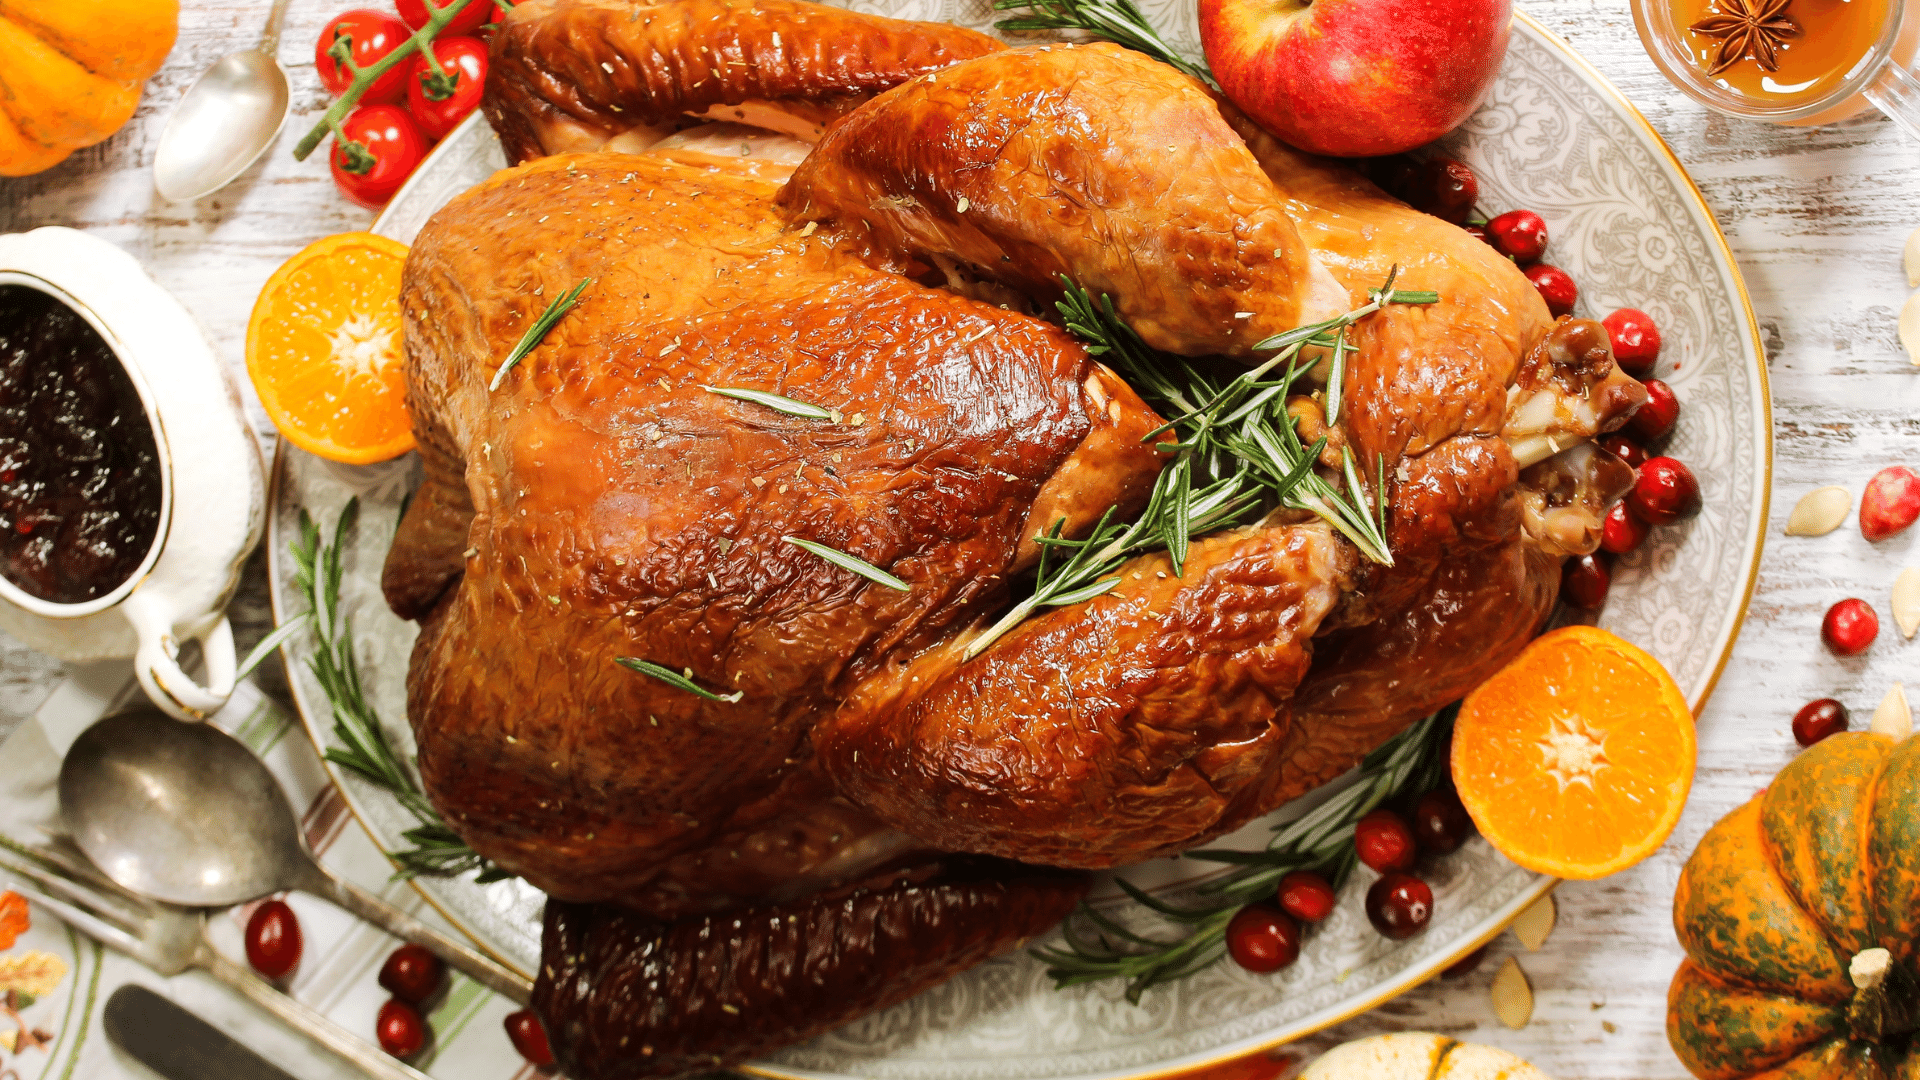 Cooking Times for Perfect Turkey?